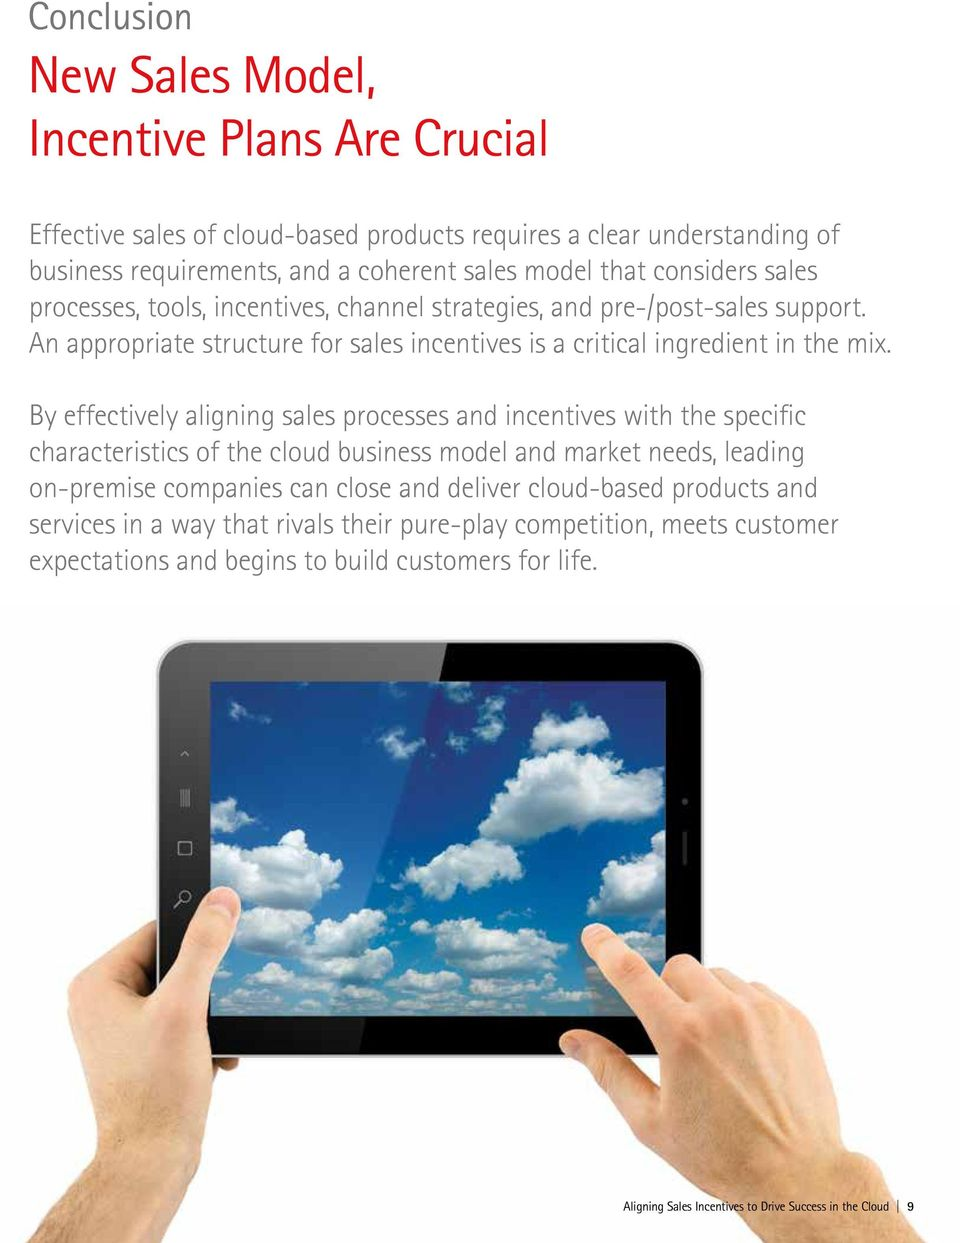 By effectively aligning sales processes and incentives with the specific characteristics of the cloud business model and market needs, leading on-premise companies can close and deliver